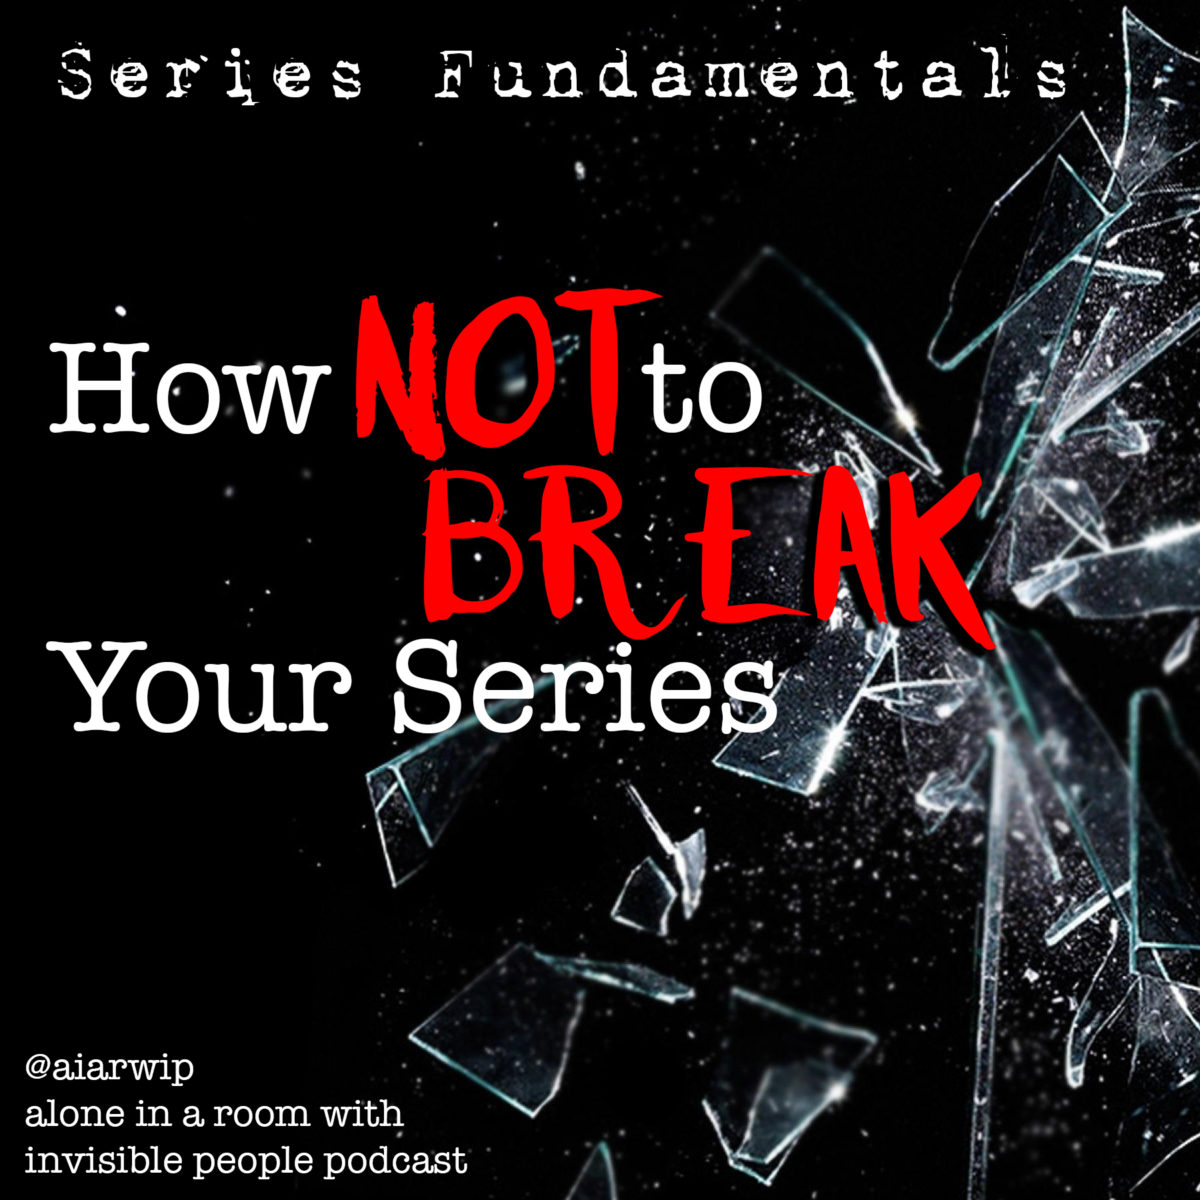 Episode 99: Series Fundamentals: How NOT to Break Your Series